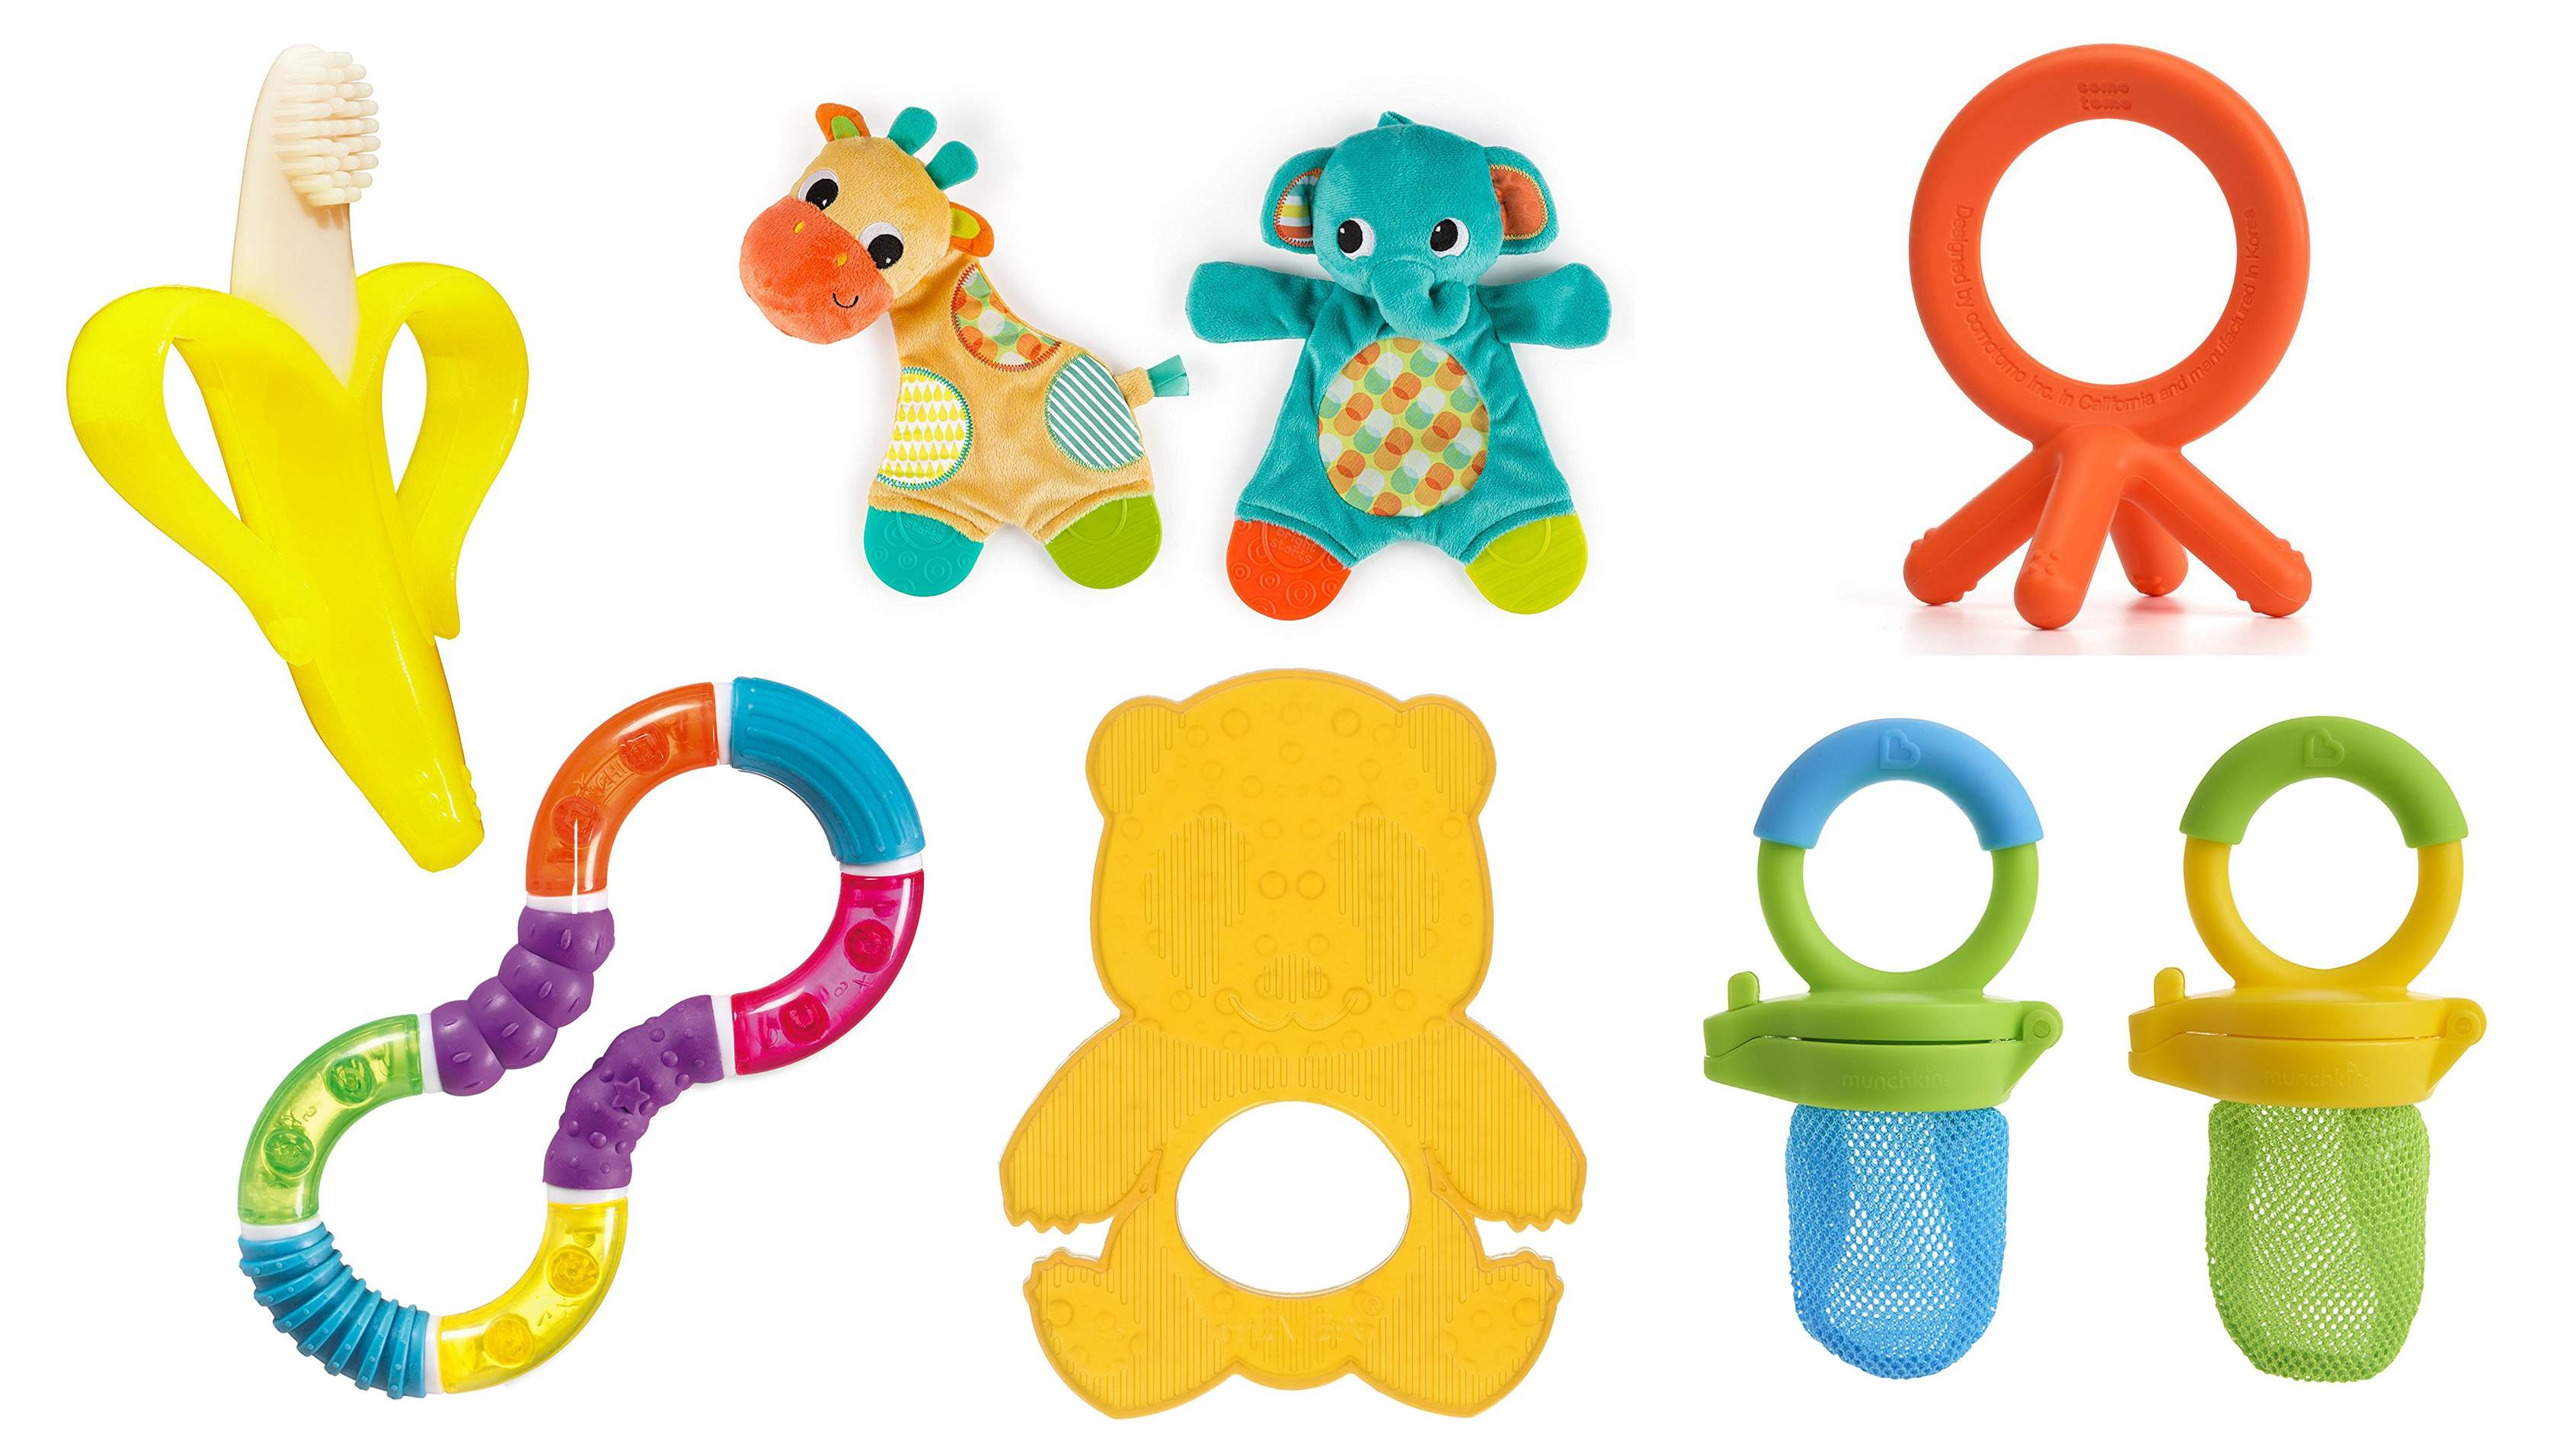 Baby rattle and teether clipart clipart black and white library Top 20 Best Baby Teething Toys | Heavy.com clipart black and white library